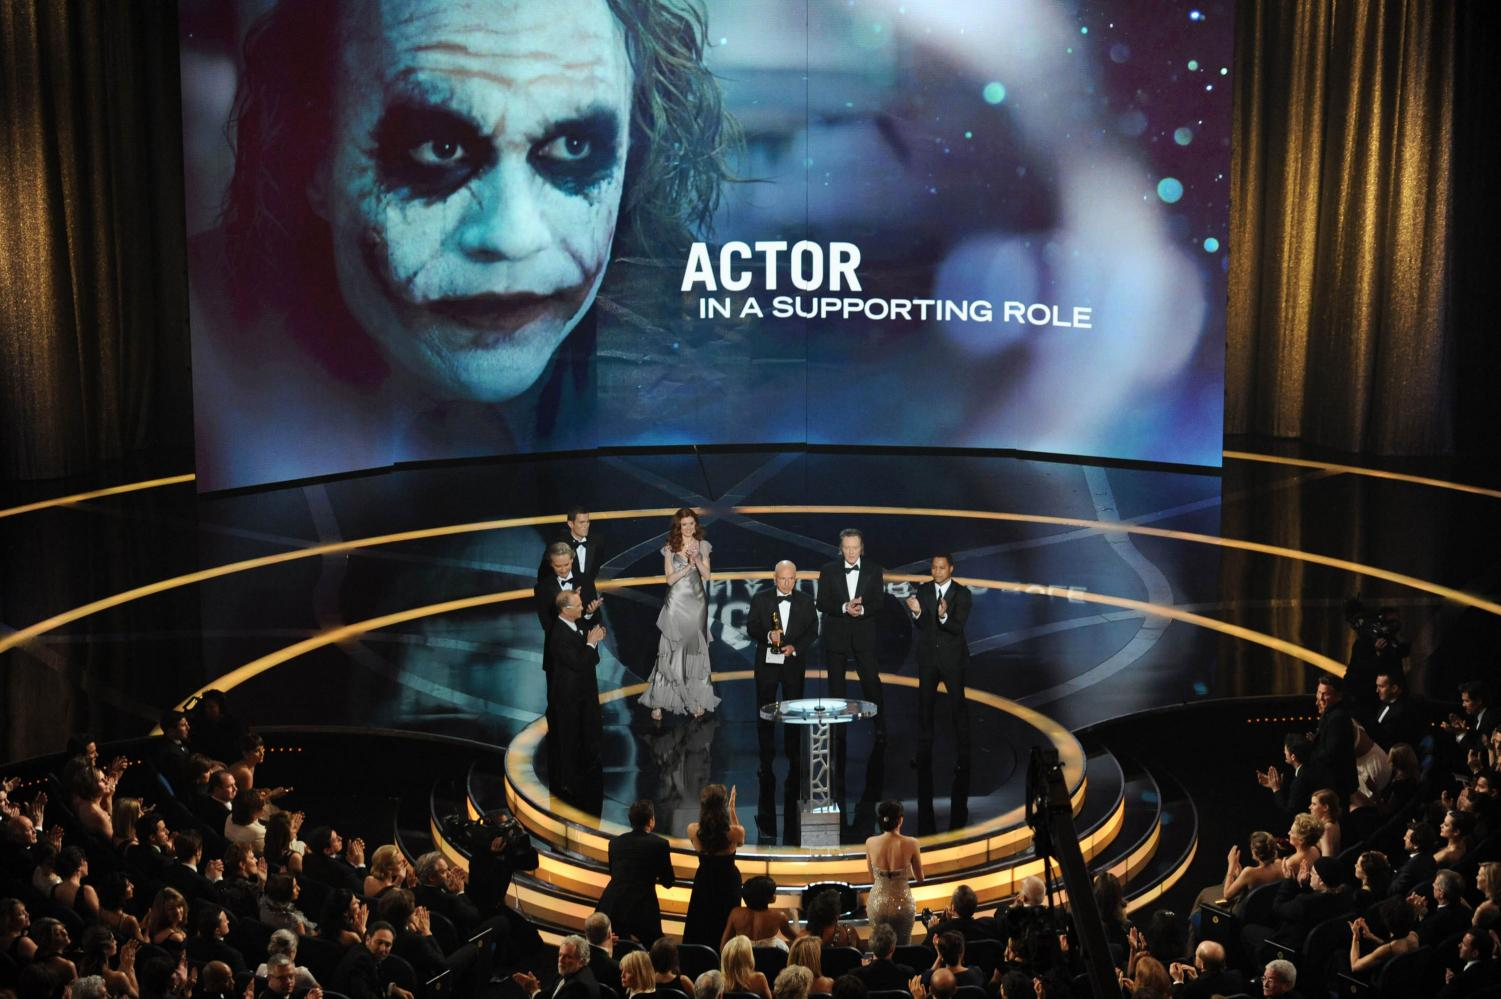 Heath Ledger's father Kim Ledger accepts the Oscar for best supporting actor on behalf of Heath Ledger who won for his work in